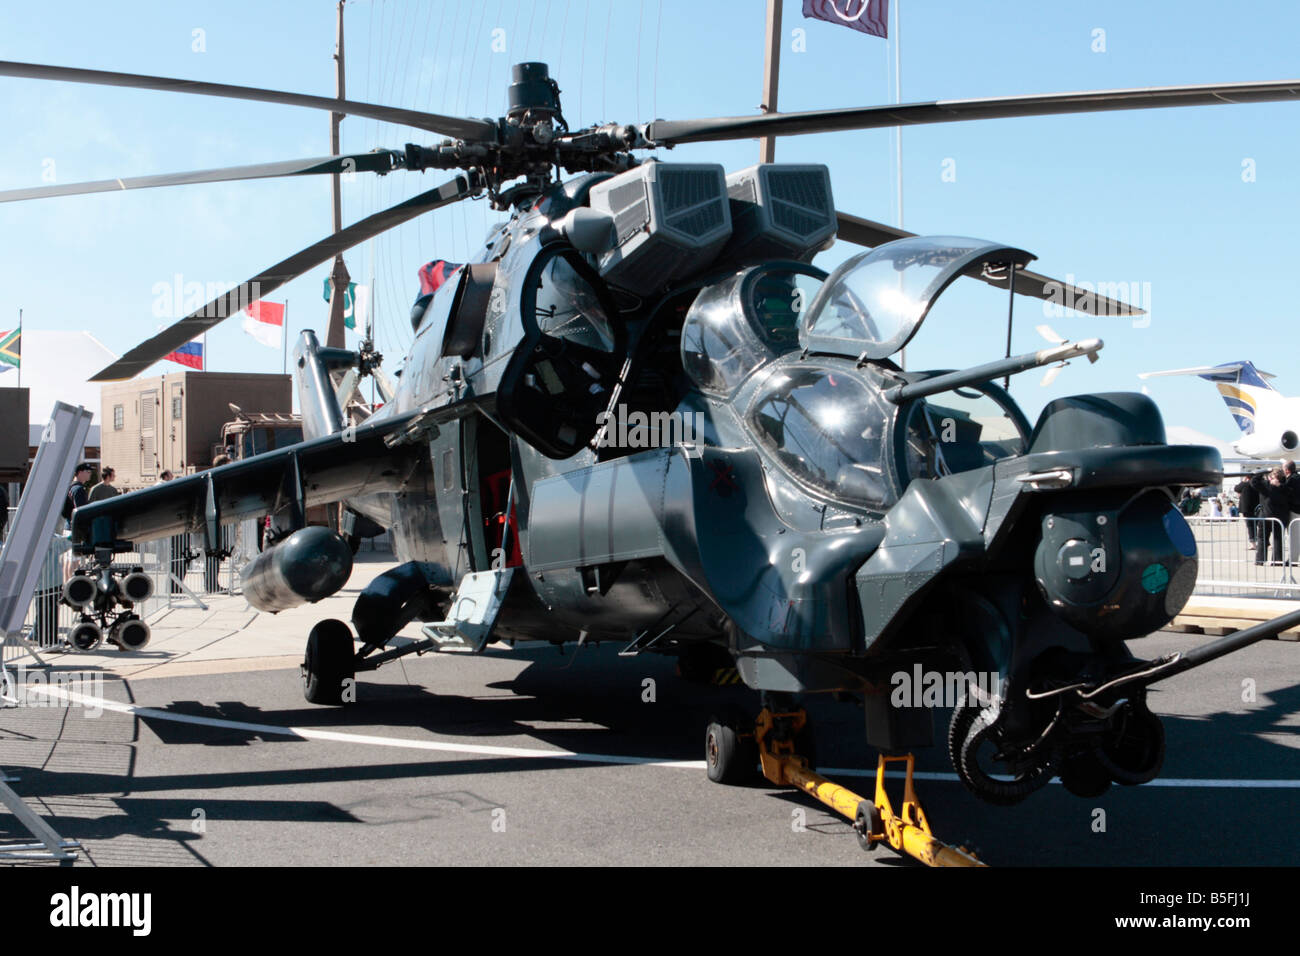 russian military helicopters for sale with Stock Photo An Ate Mi 24 Superhind Attack Helicopter 20627086 on 1024155881 besides Dubai Airshow 2013 furthermore MiG 23 Flogger as well Topstories4439 HAL to make Russian Ka 226T helicopters likewise Stock Photo An Ate Mi 24 Superhind Attack Helicopter 20627086.